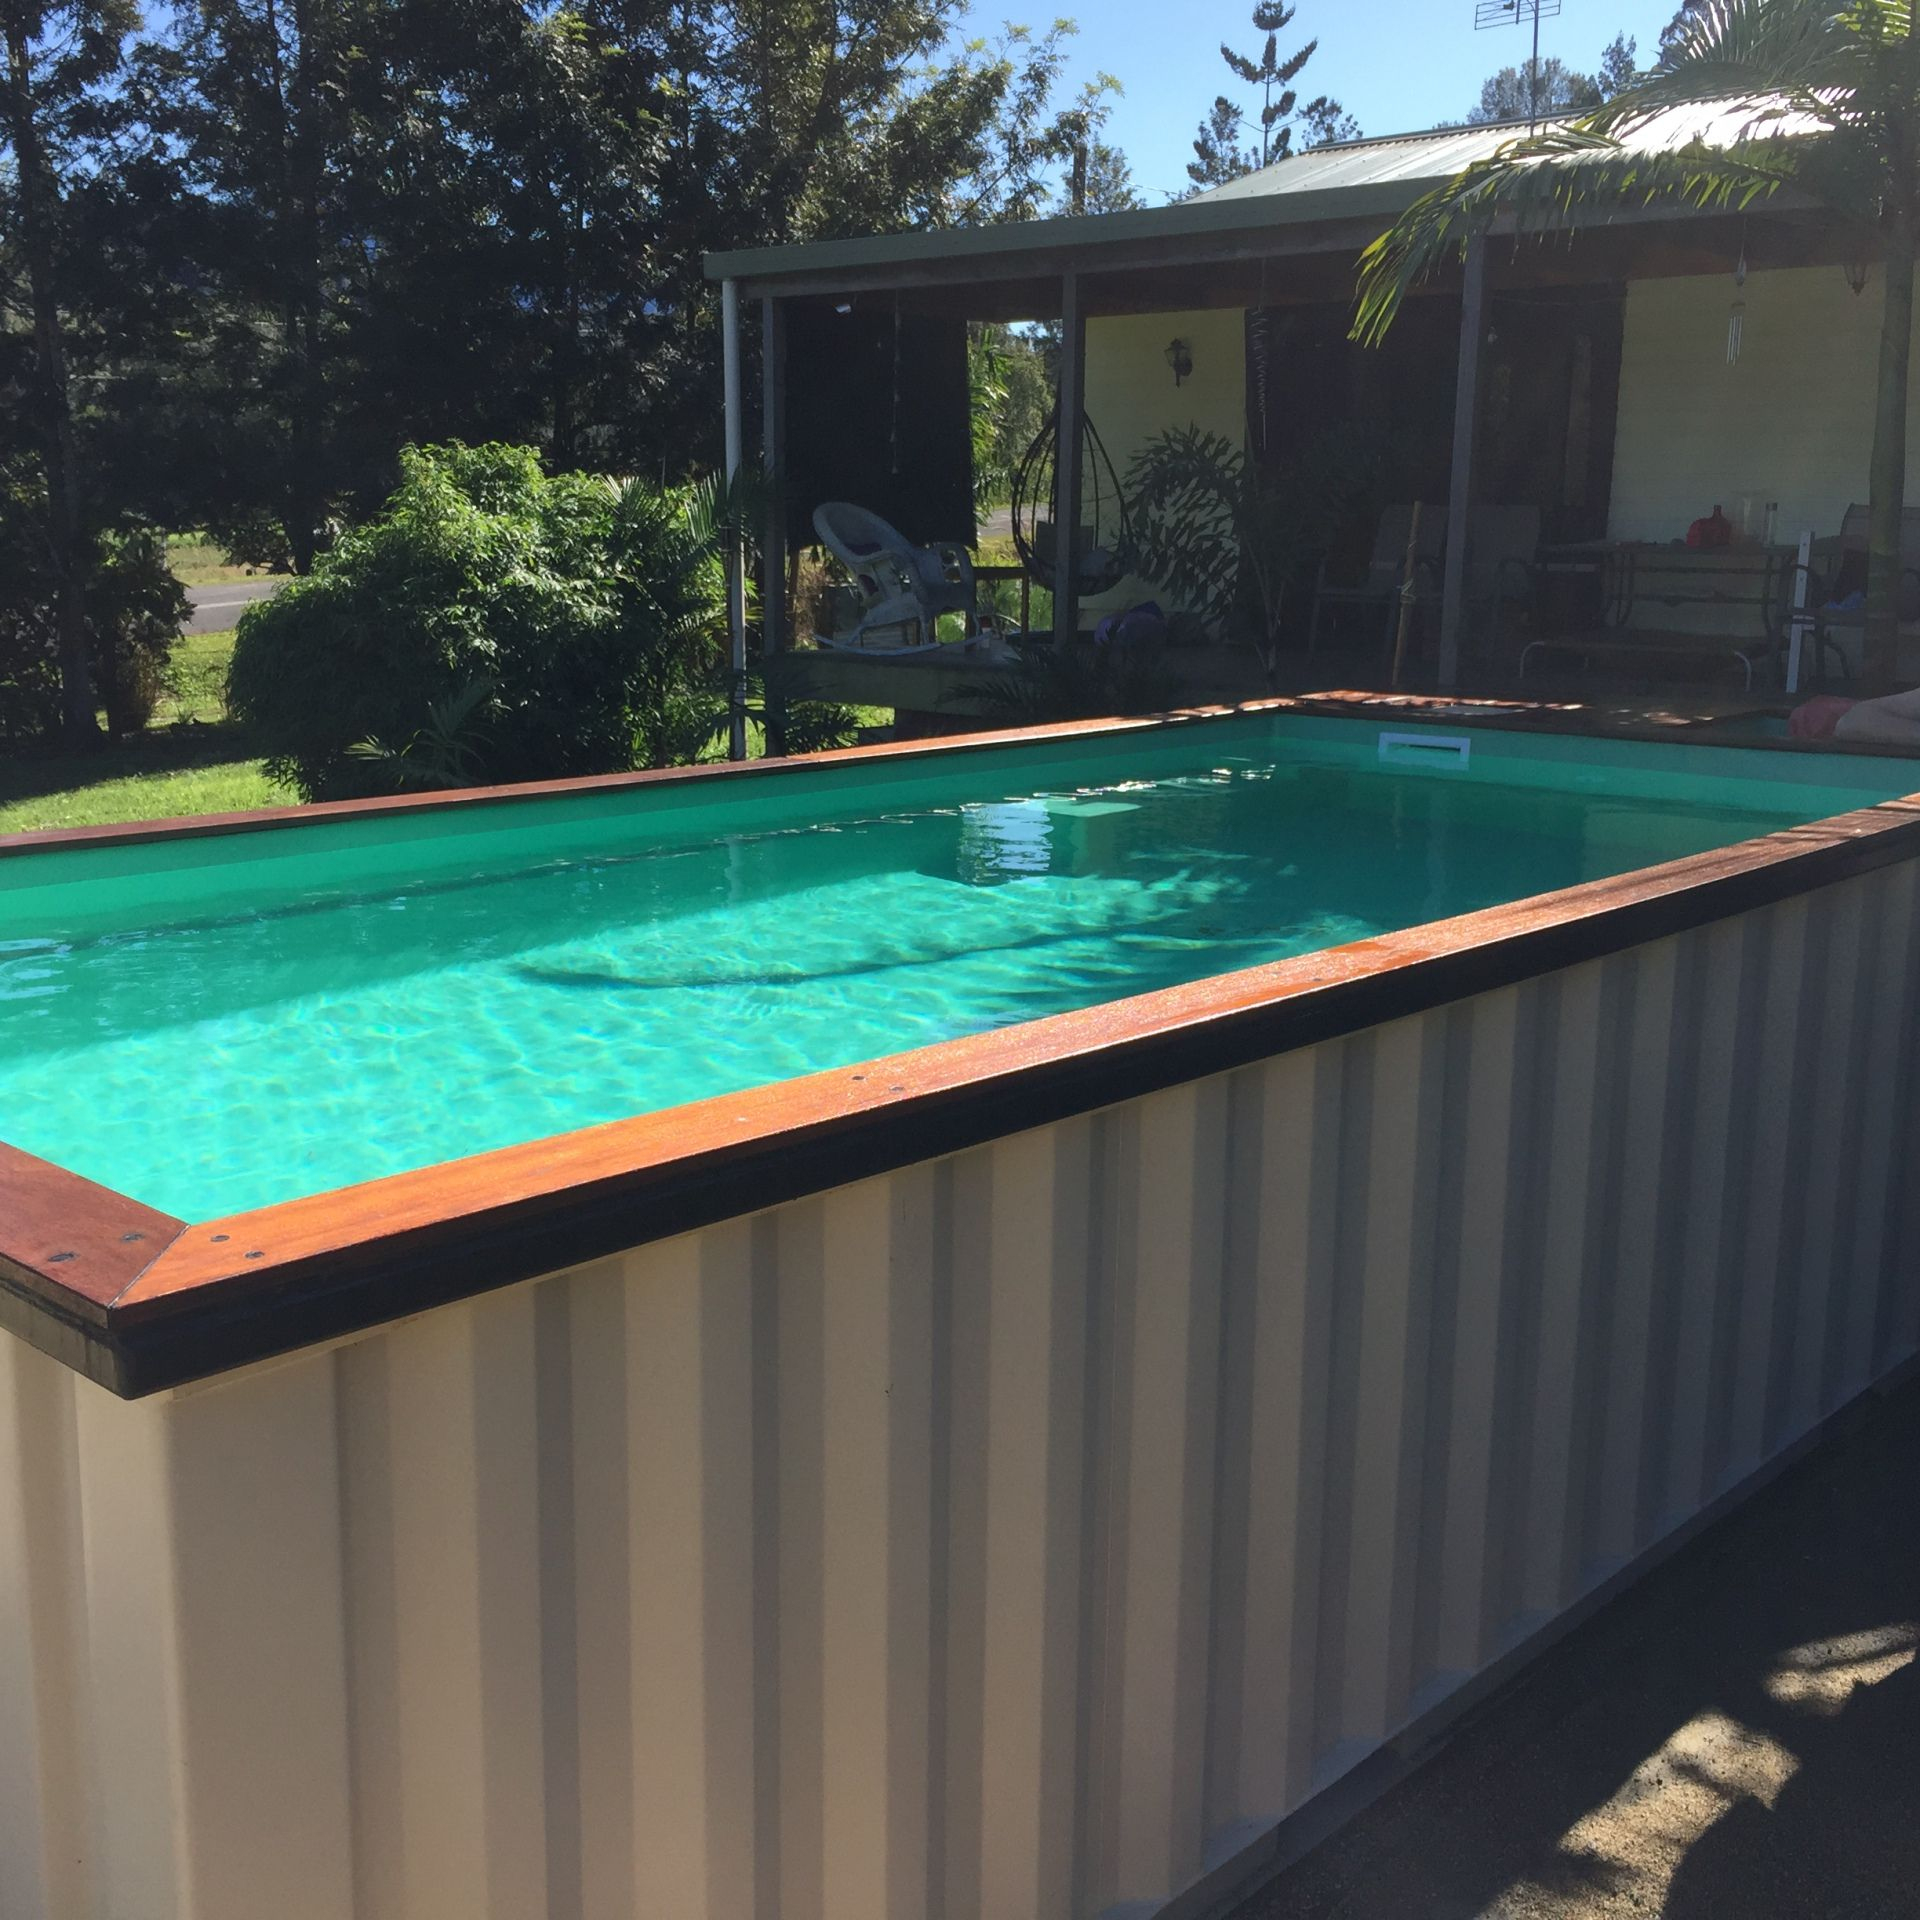 Above Ground Pool Made From A Recycled Shipping Container ... encequiconcerne Piscine Conteneur